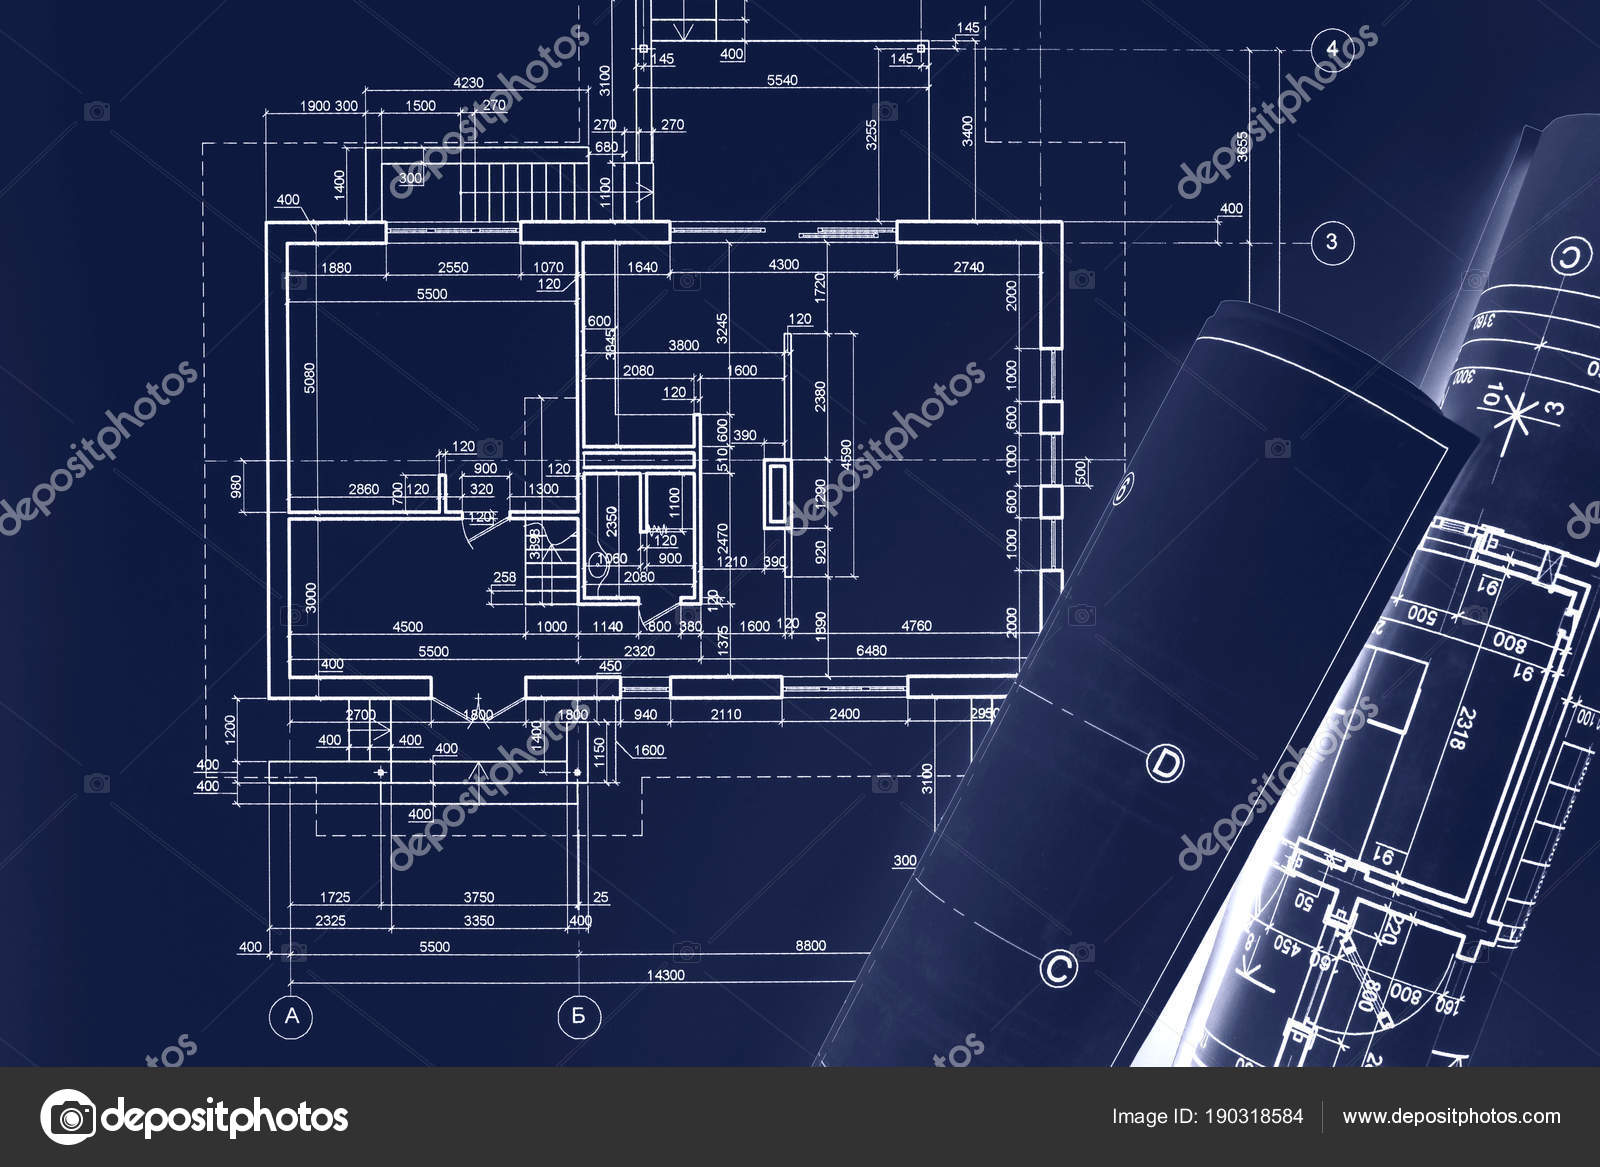 Civil building sketch drawings rolled blueprints on dark blue civil building sketch drawings rolled blueprints on dark blue surface architect workplace background double exposure photo by mrtwister malvernweather Image collections